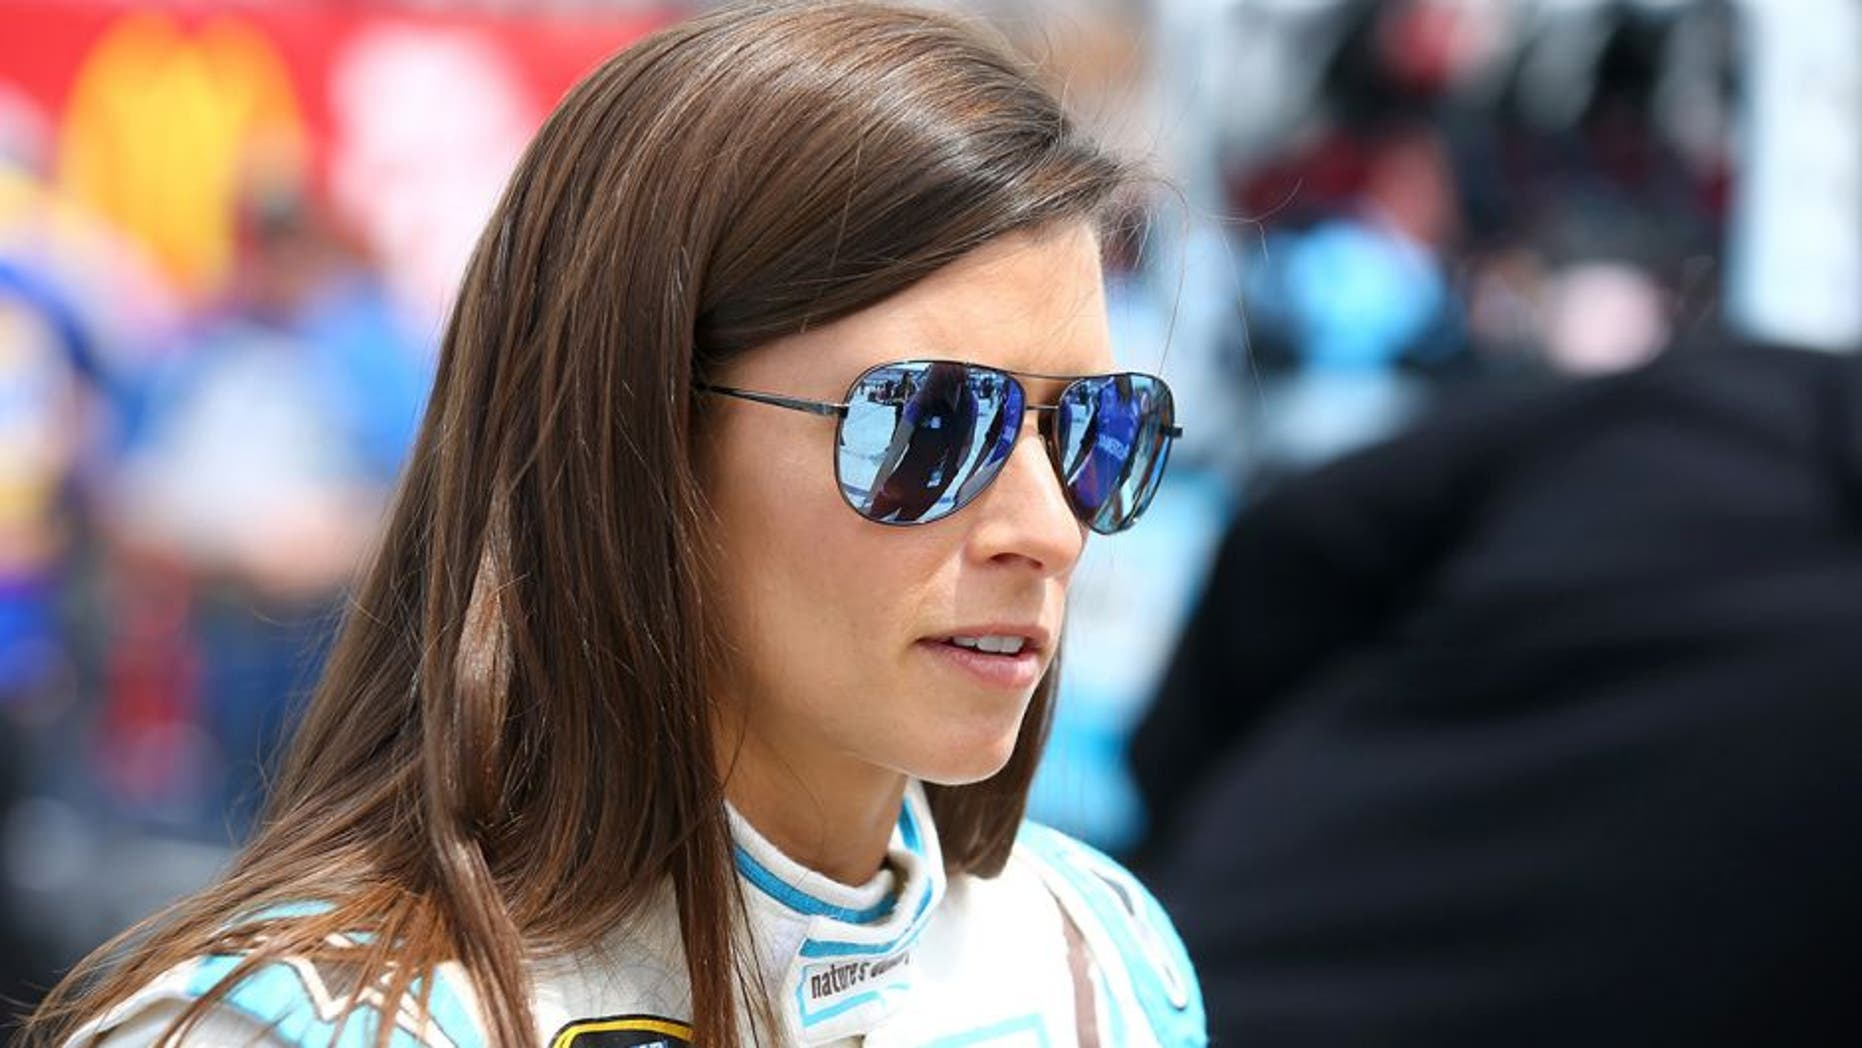 FORT WORTH, TEXAS - APRIL 08: Danica Patrick, driver of the #10 Nature's Bakery Chevrolet, stands on the grid during qualifying for the NASCAR Sprint Cup Series Duck Commander 500 at Texas Motor Speedway on April 8, 2016 in Fort Worth, Texas. (Photo by Sarah Crabill/Getty Images for Texas Motor Speedway)